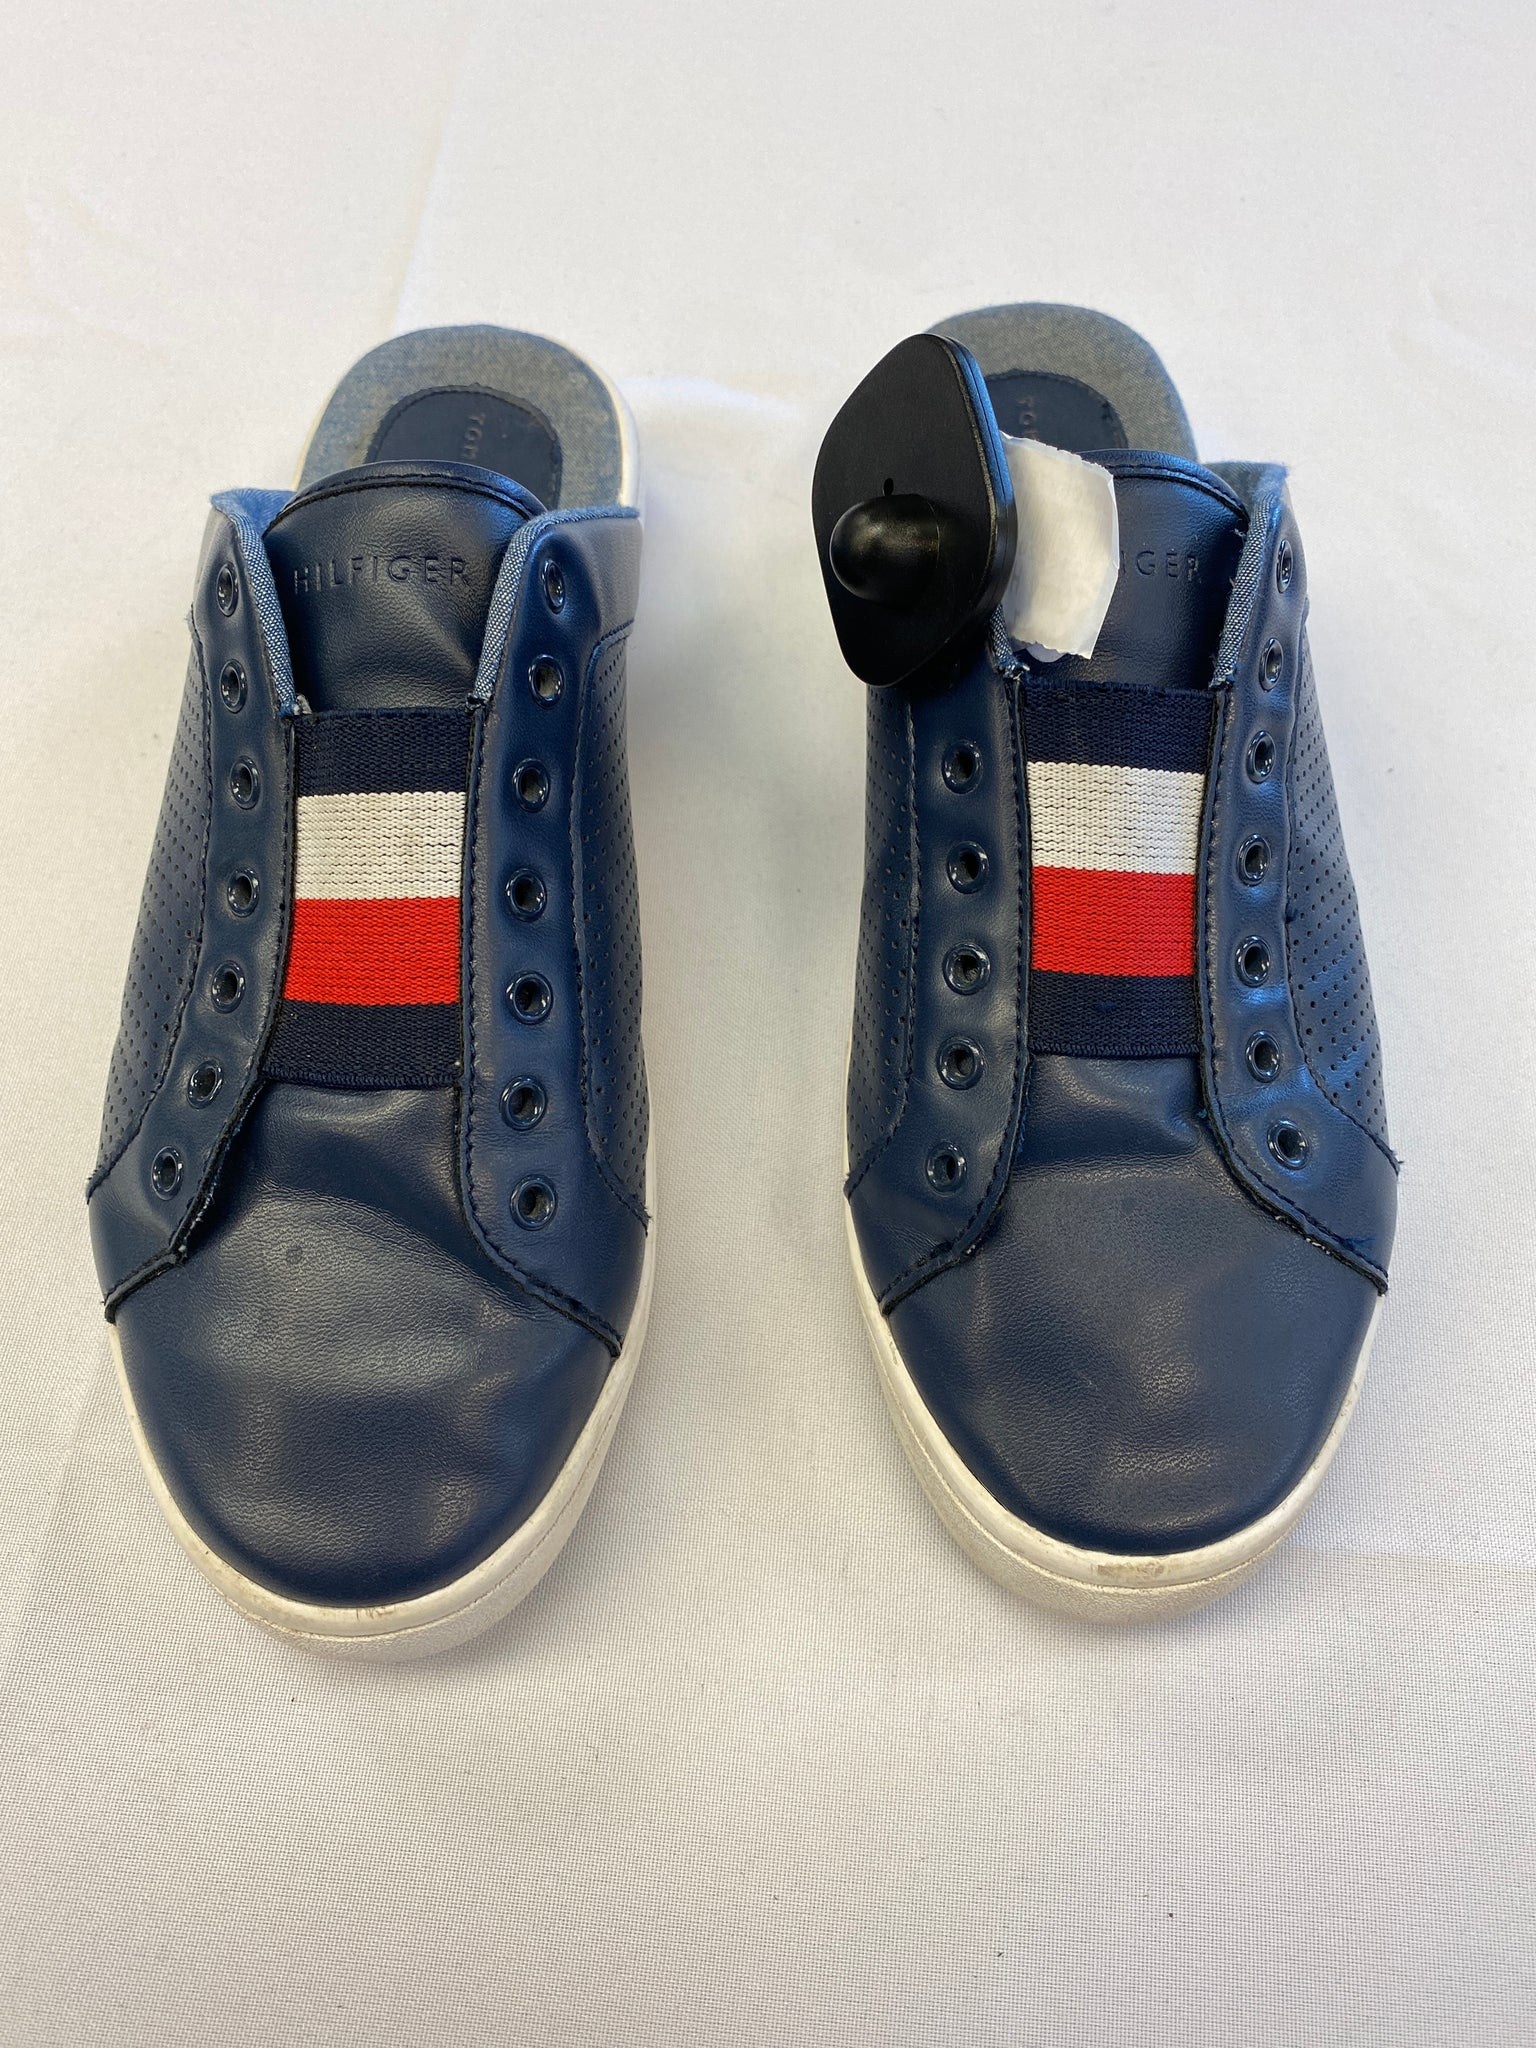 Tommy Hilfiger Casual Shoes Womens 7 - Plato's Closet